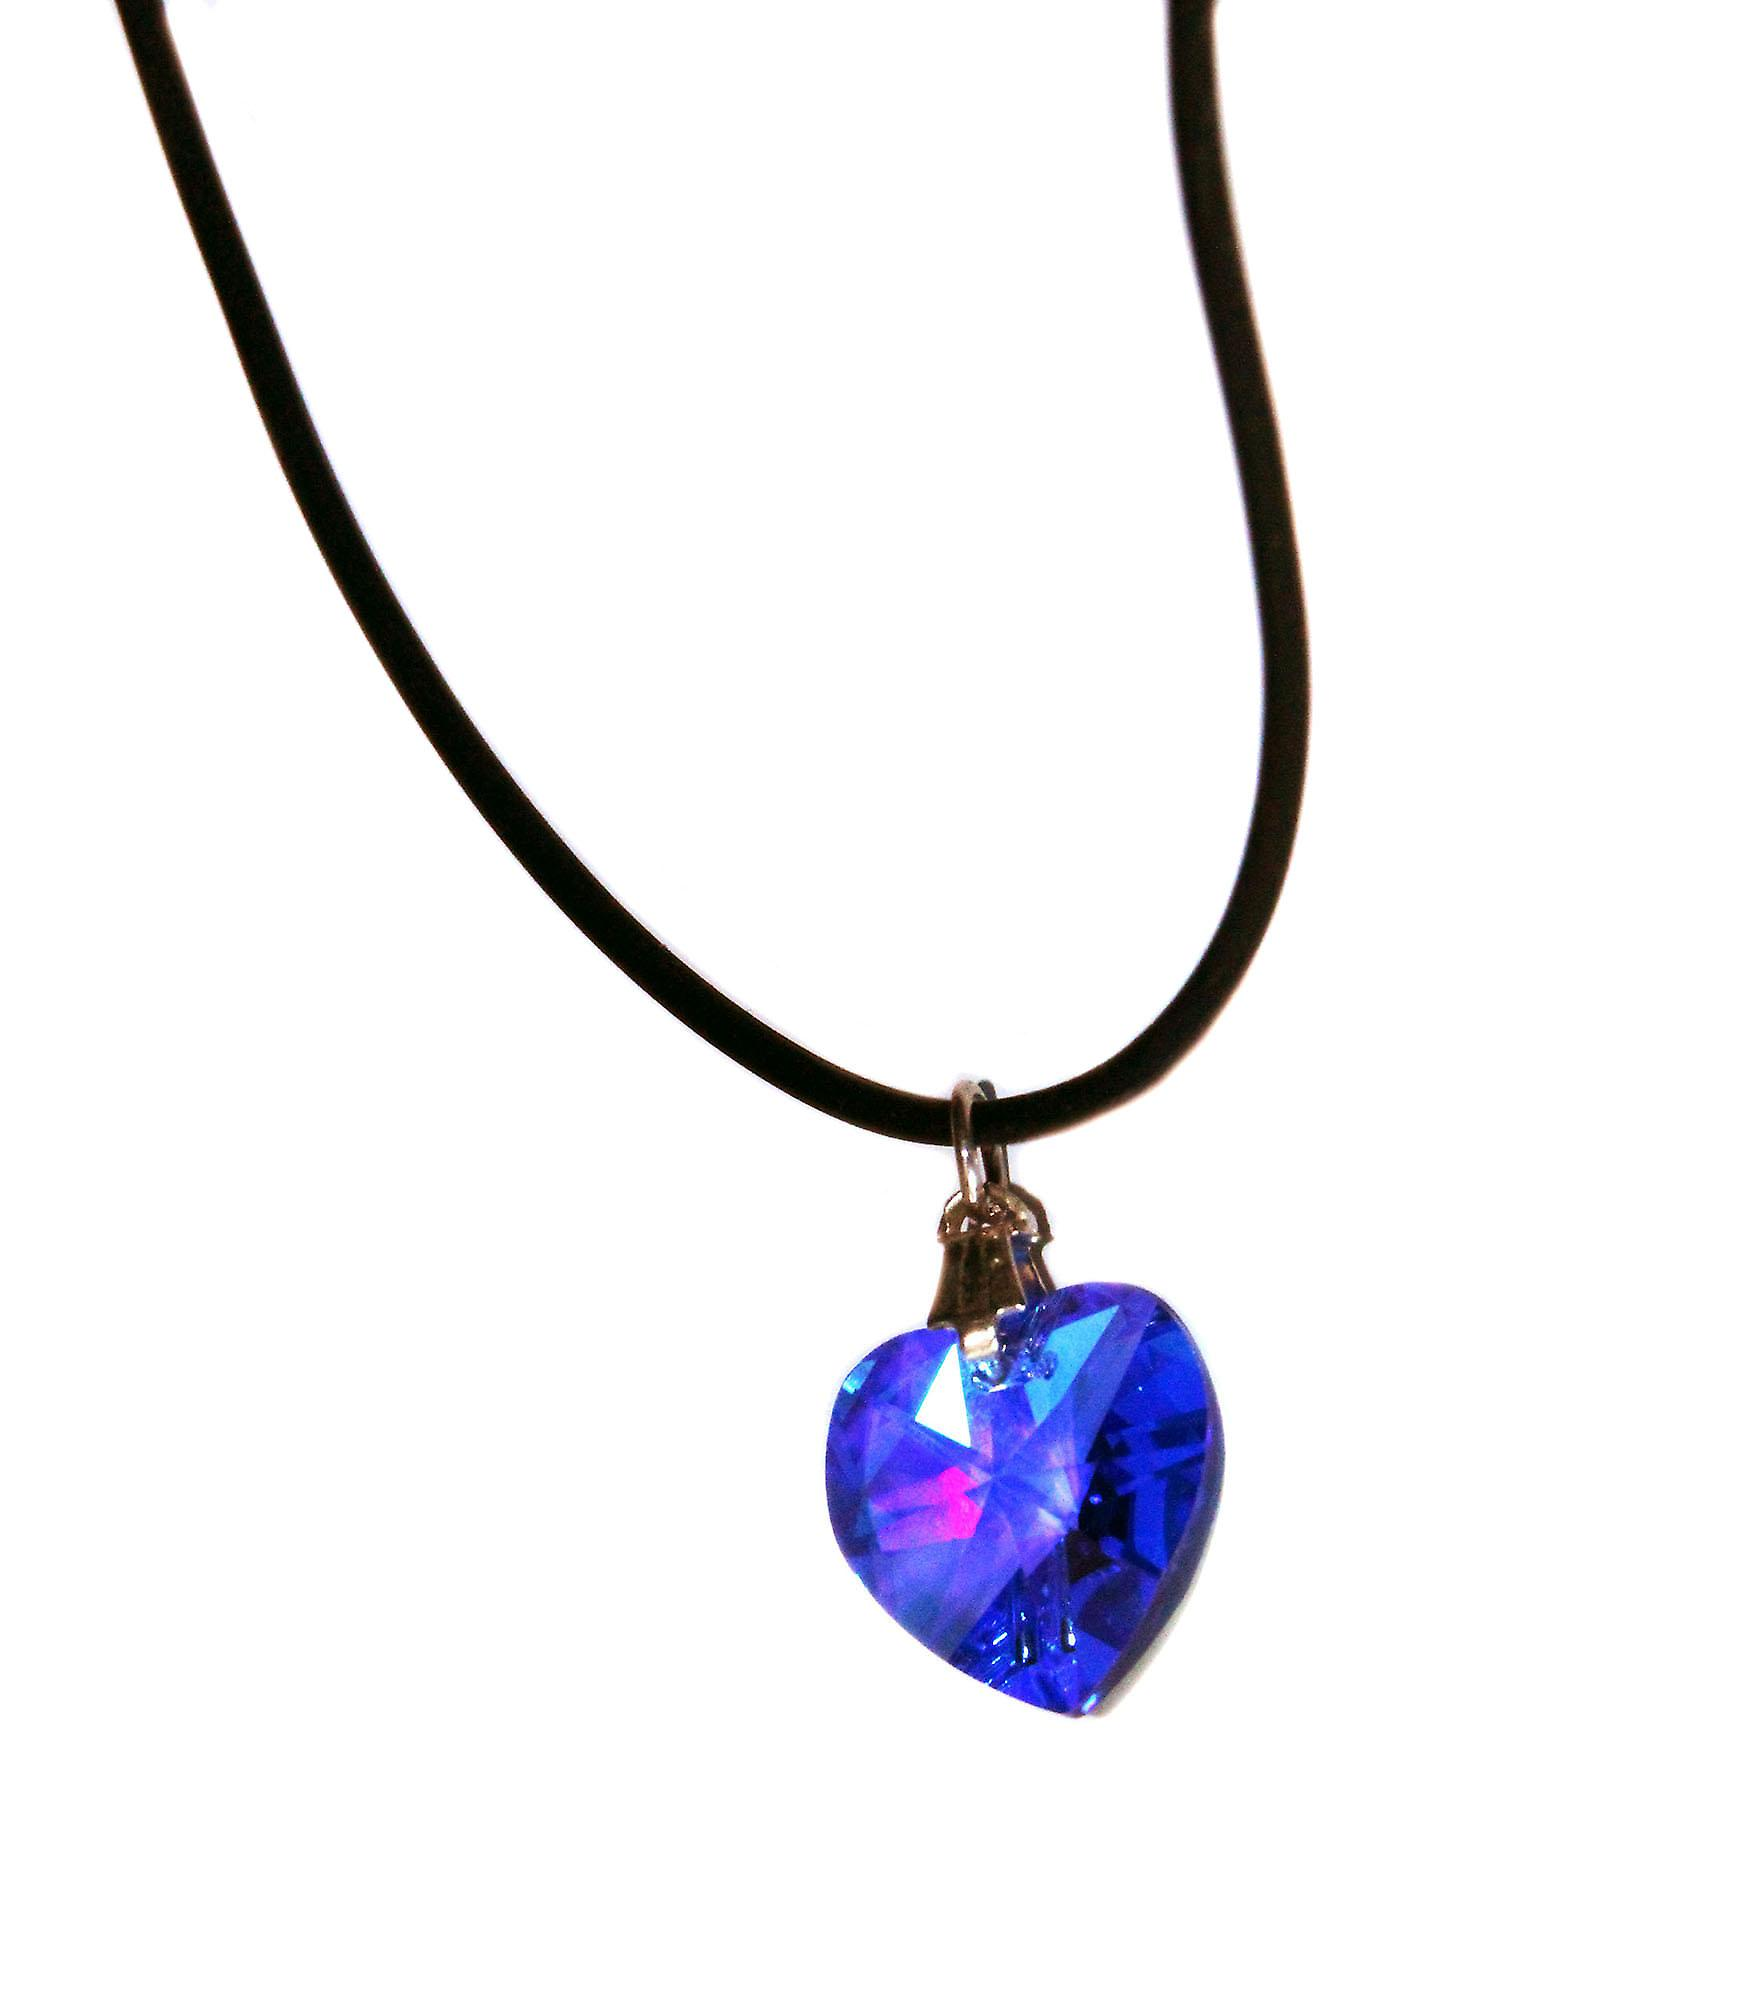 Waooh - Jewelry - Swarovski / blue heart pendant with rubber cord